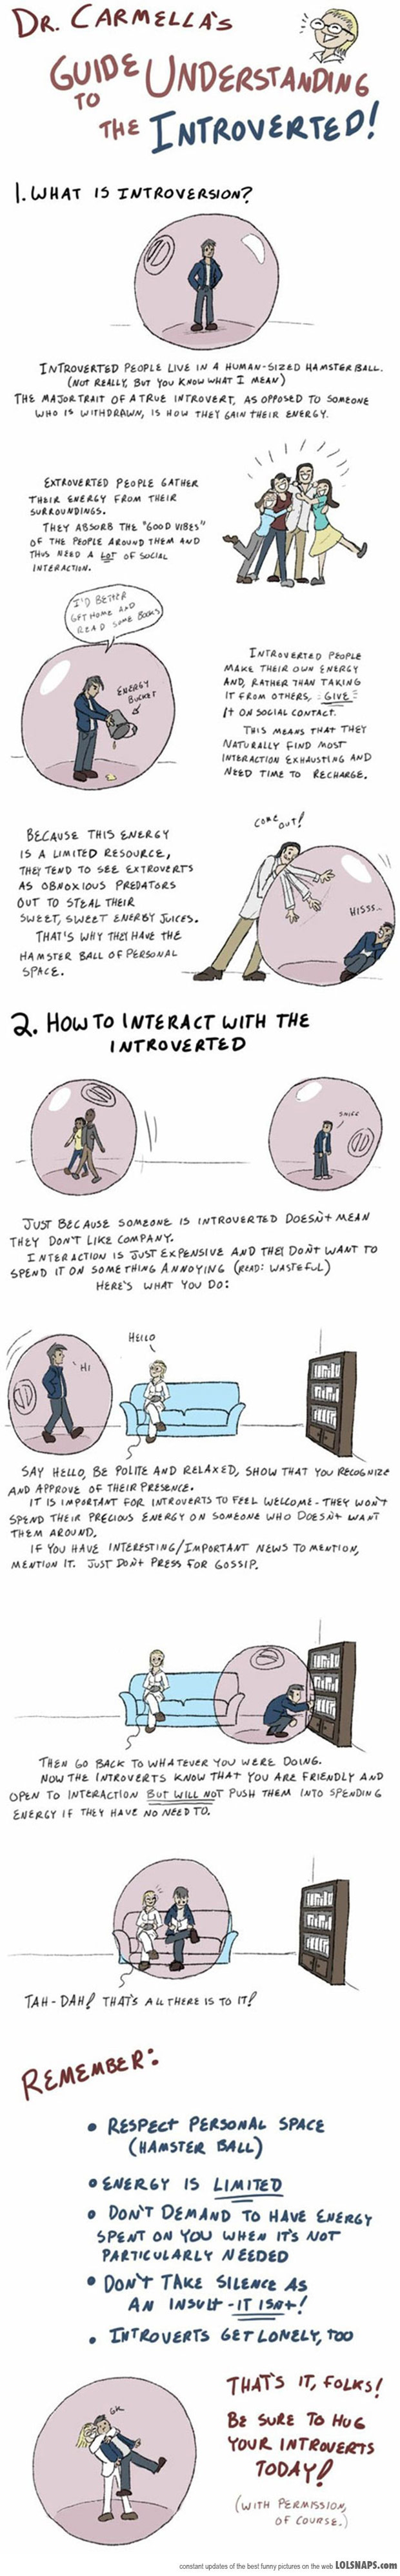 An Important Guide to Understanding Introverts